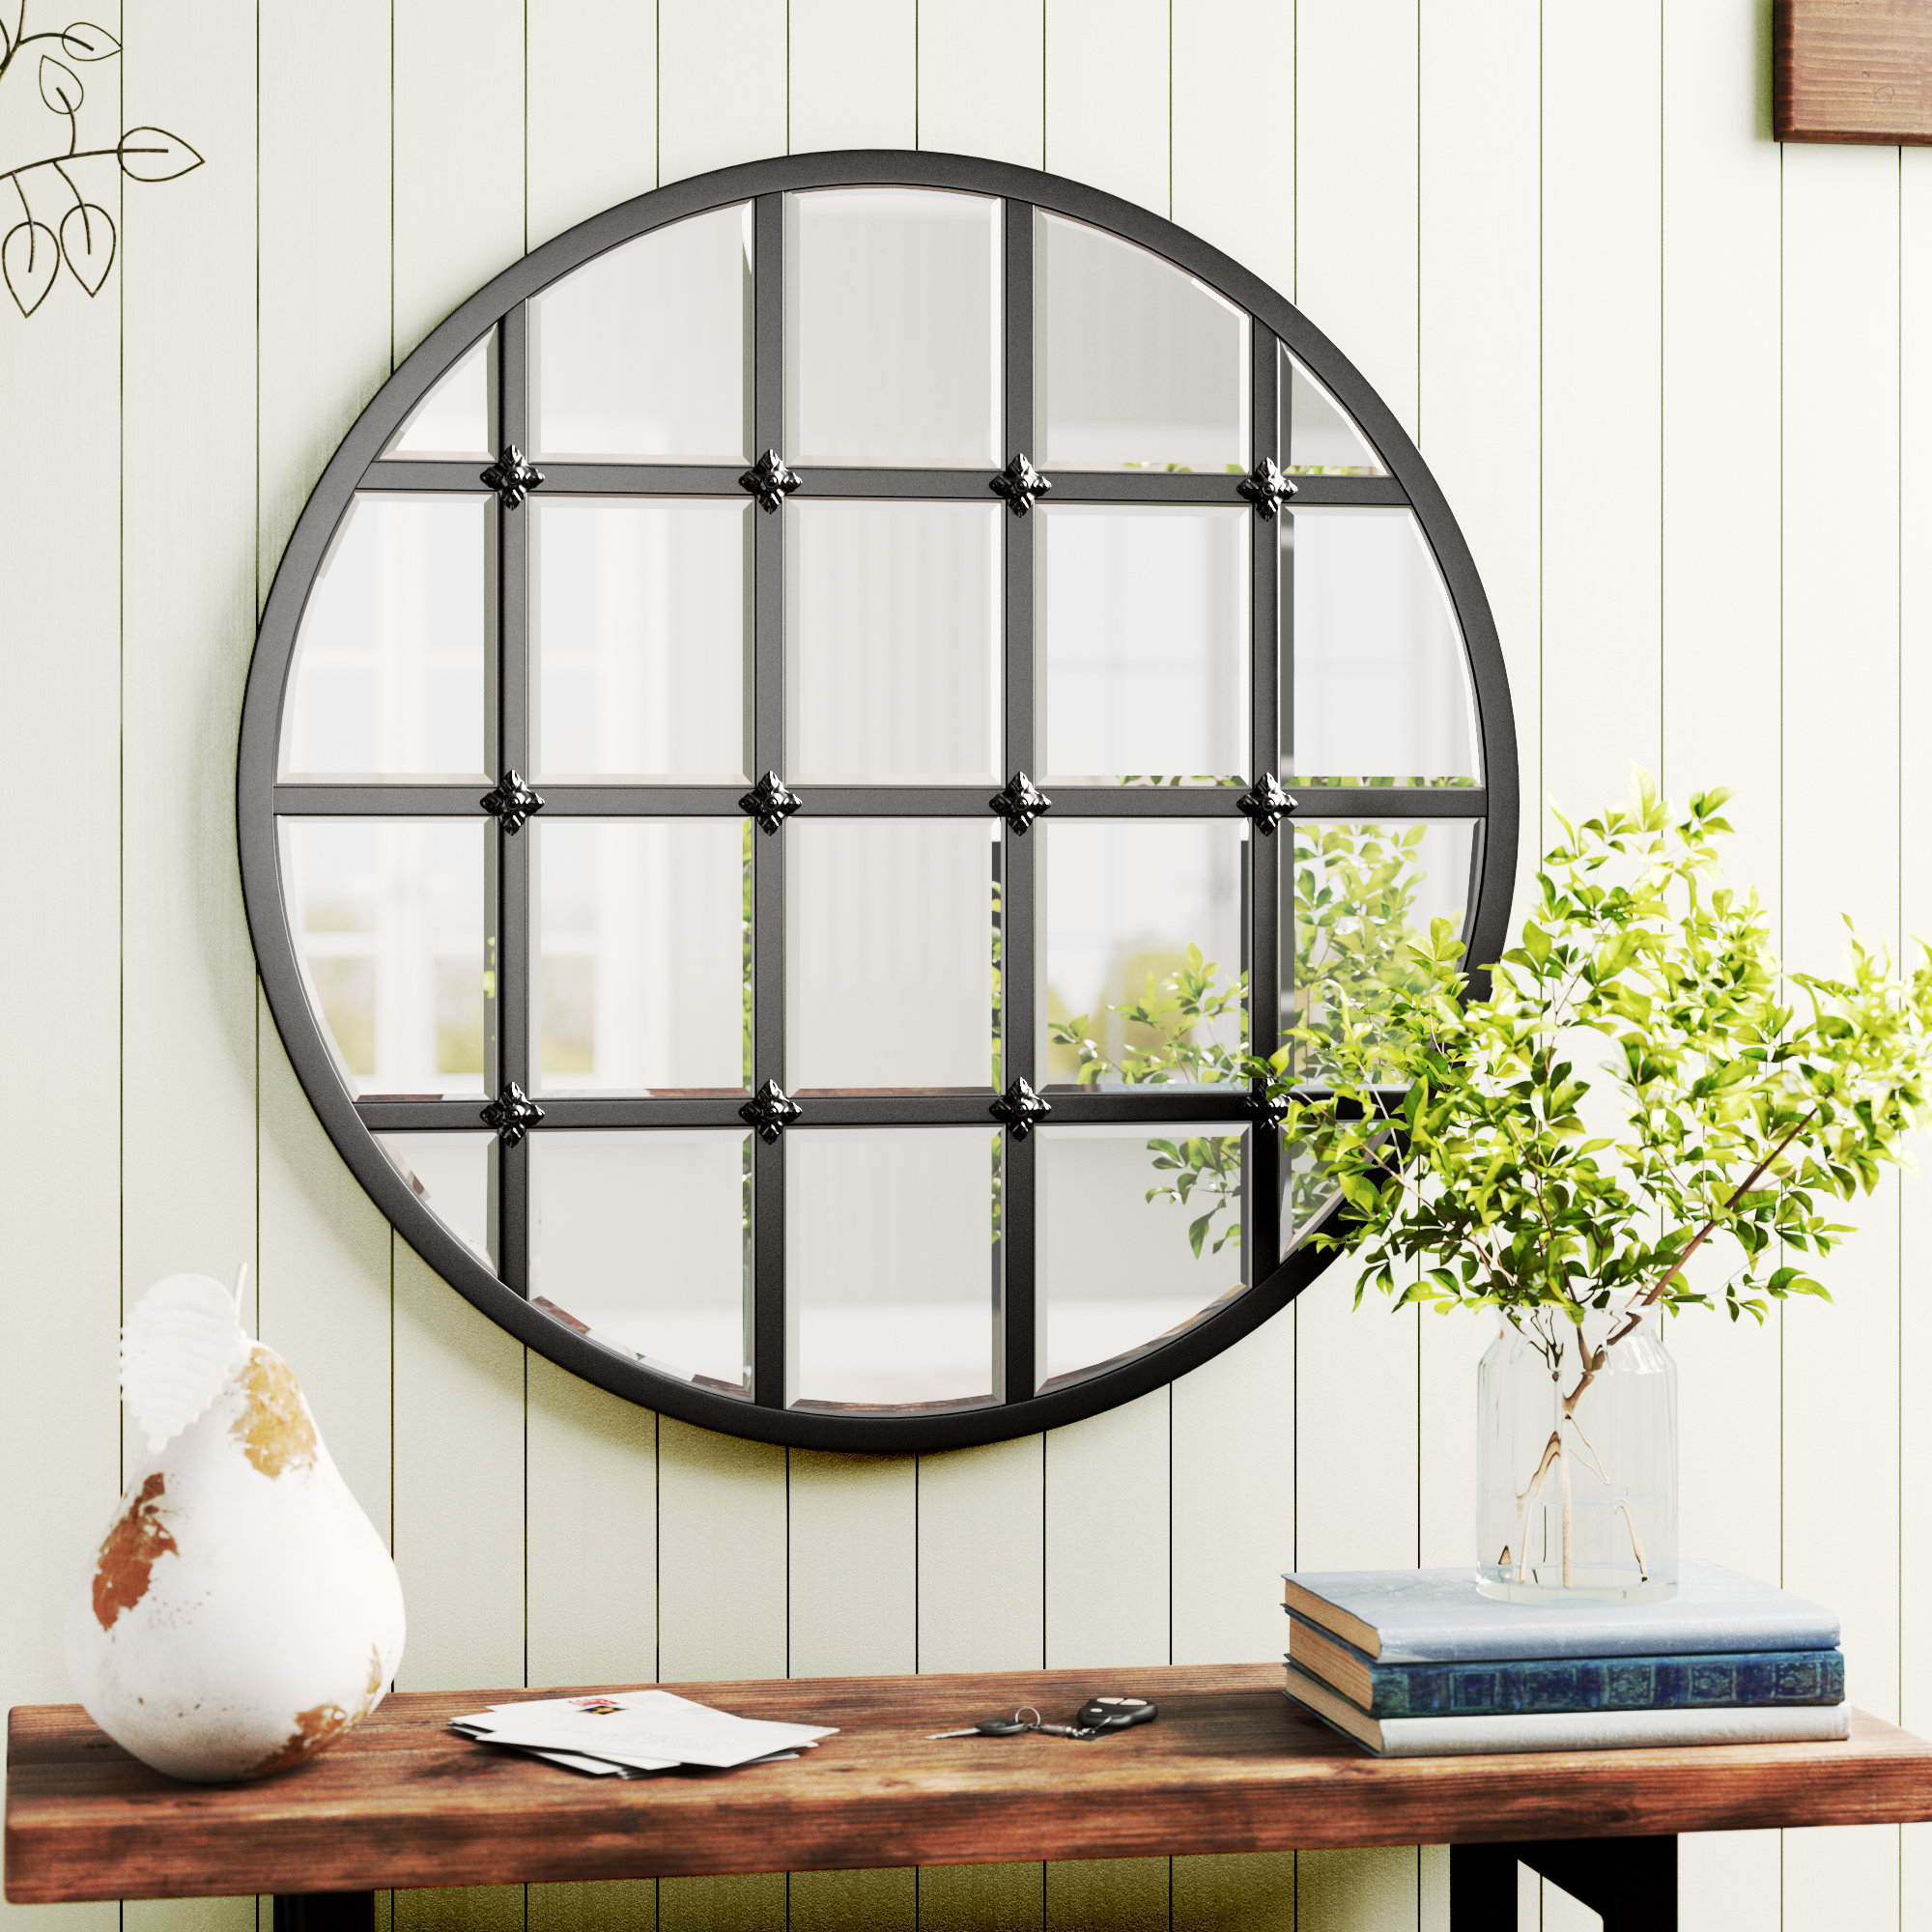 Juliana Accent Mirrors With Regard To Most Popular Juliana Accent Mirror Mirrors T Mirror Metal Mirror (View 5 of 20)